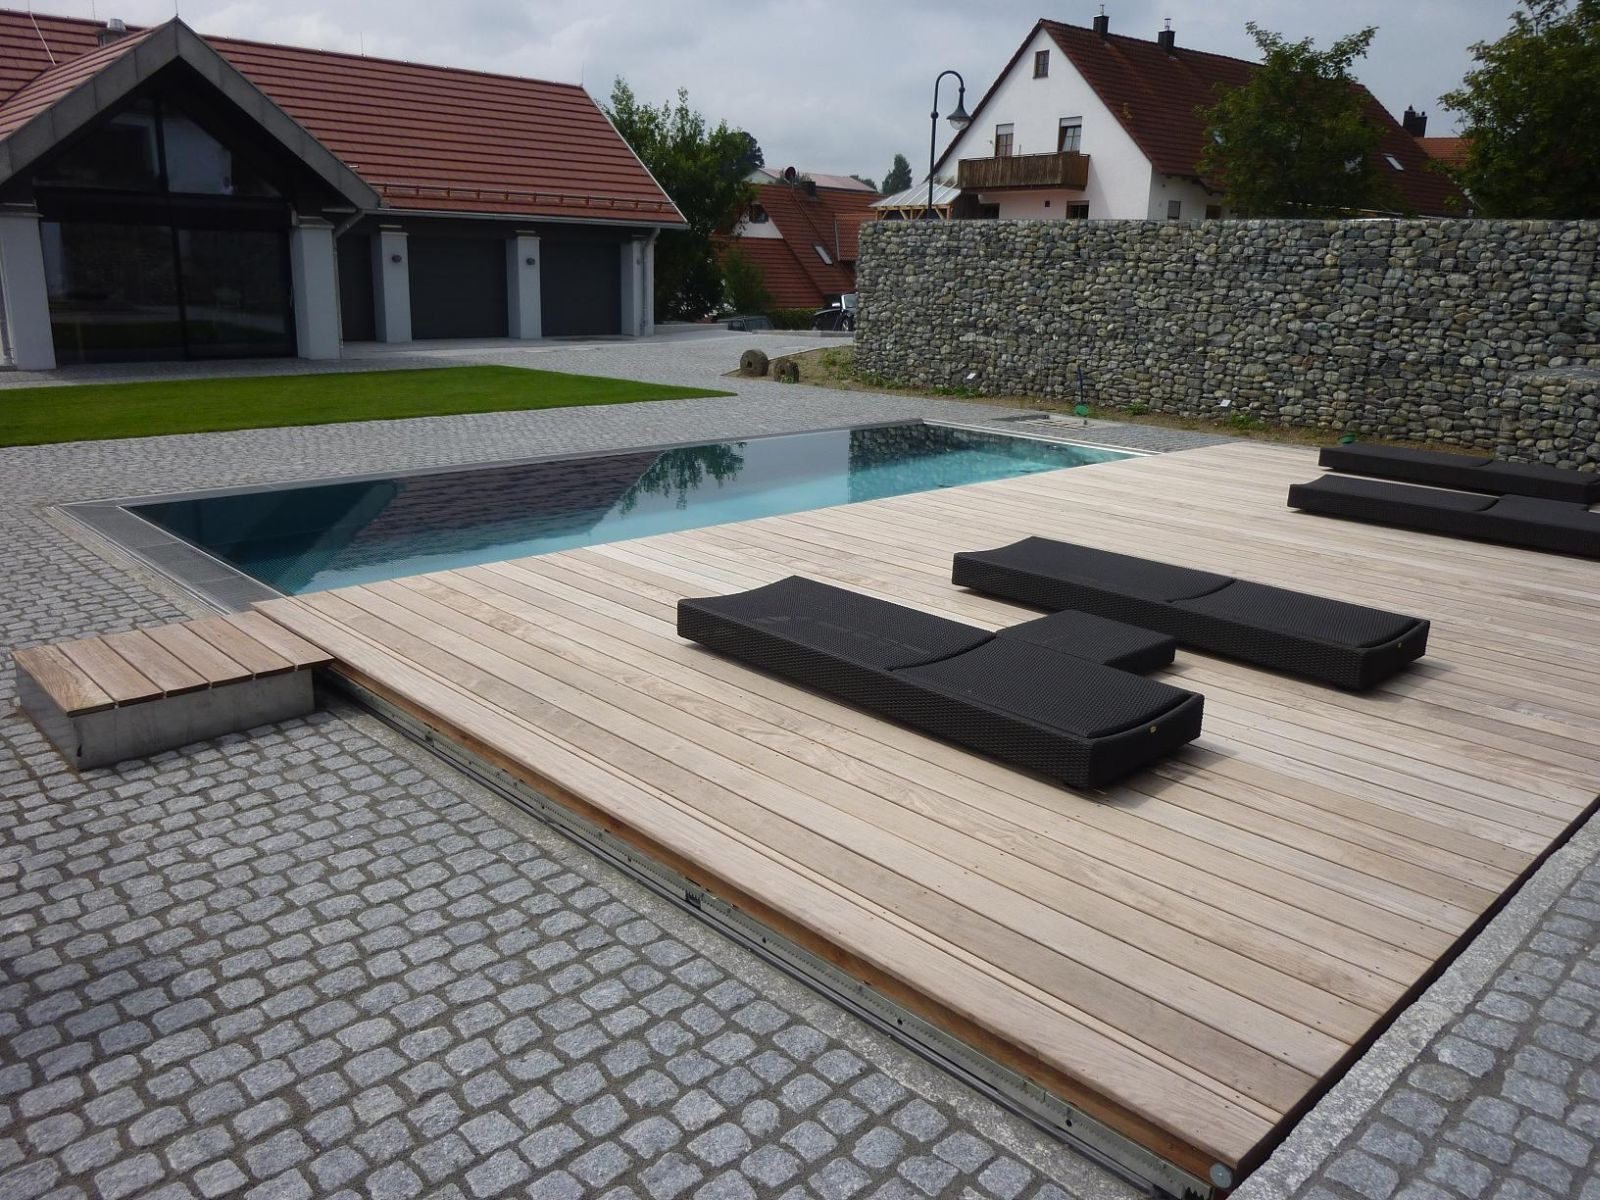 Think That Entire Deck Could Be On Rollers And Just Roll Right Over The Pool Like A Cover